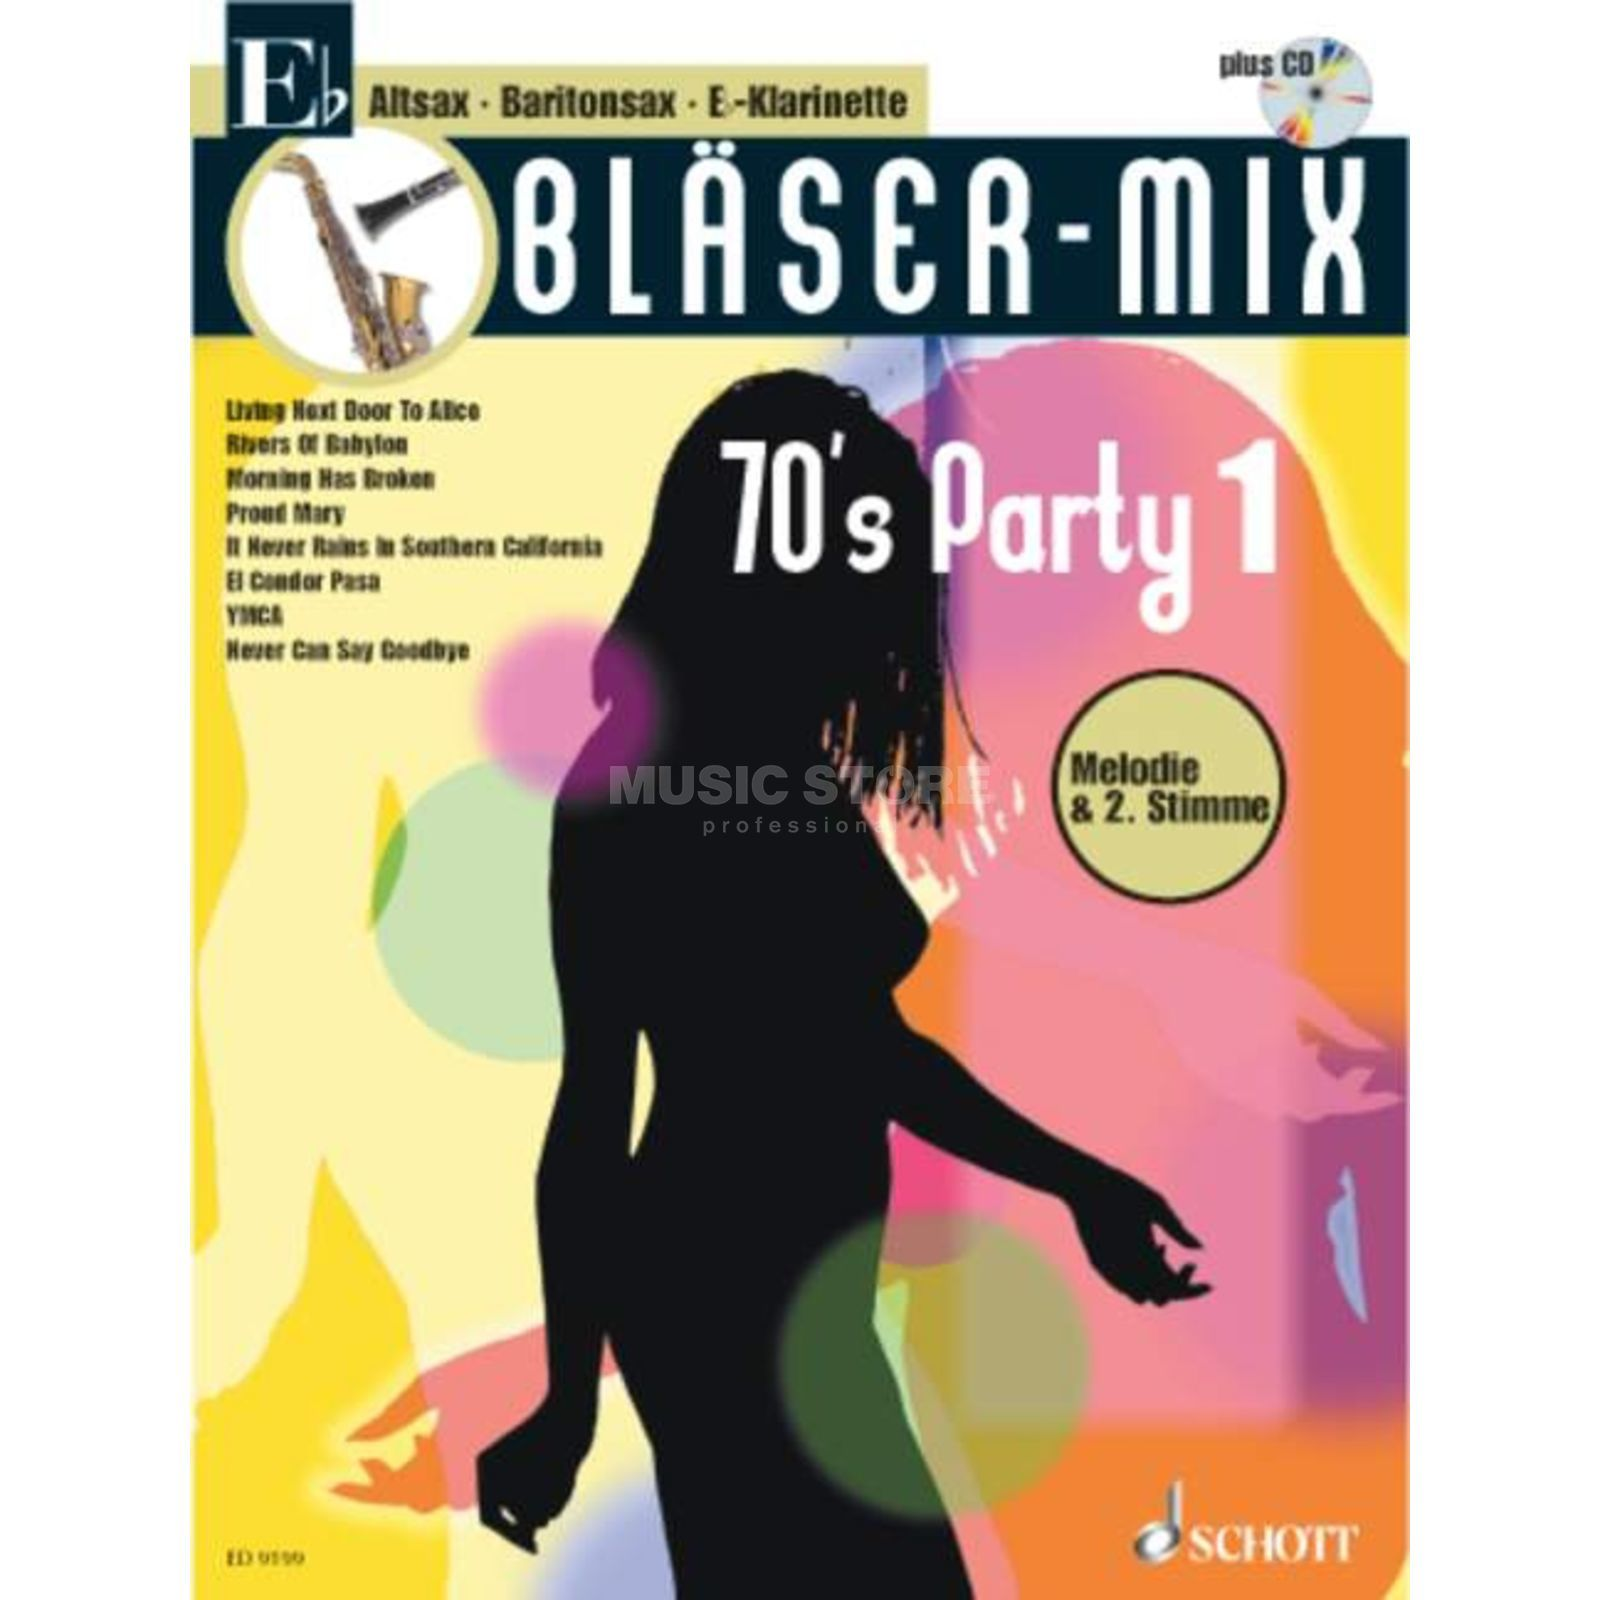 Schott-Verlag 70's Party, Bläser-Mix Play-along Eb-Instrumente Produktbild